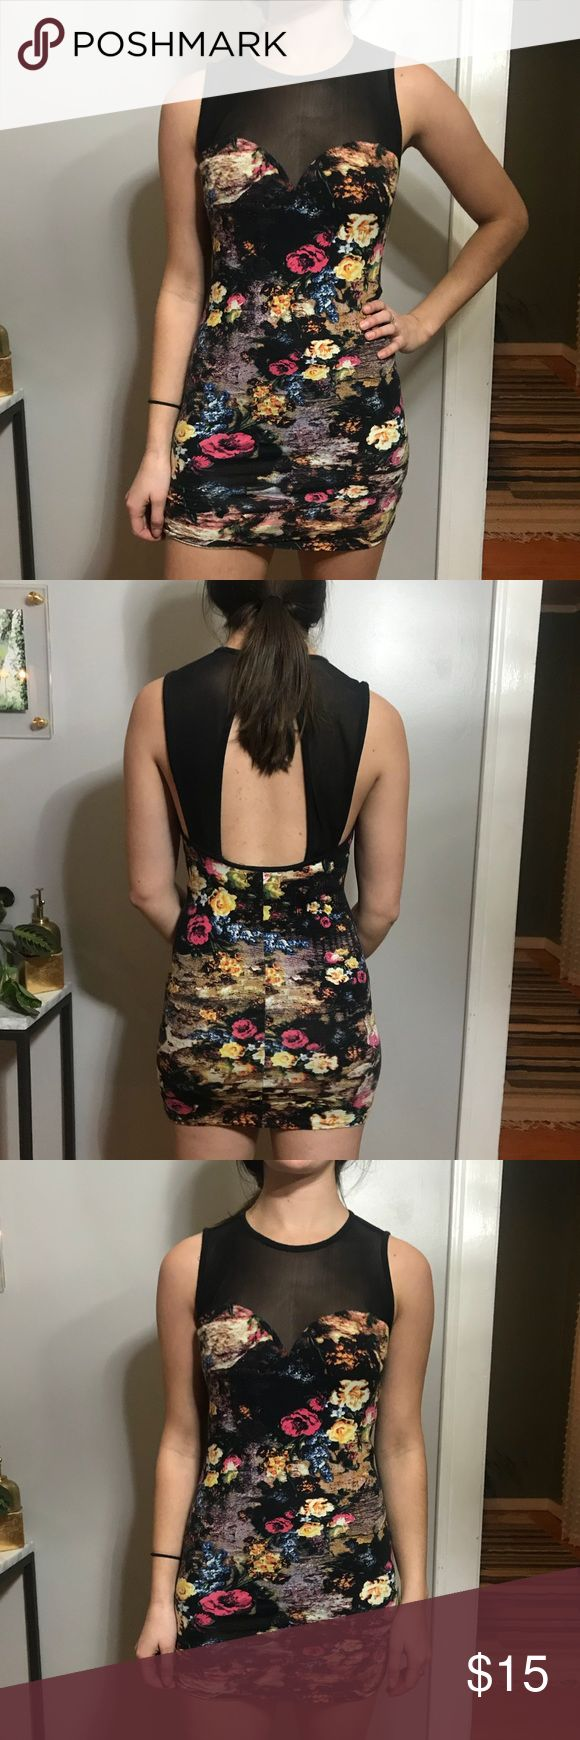 Urban Outfitters Minidress Such cute detail, great for a night out! Model is 5'9 and a size 6. Great used condition. Multicolored floral pattern with cut-out back detail in transparent fabric Urban Outfitters Dresses Mini